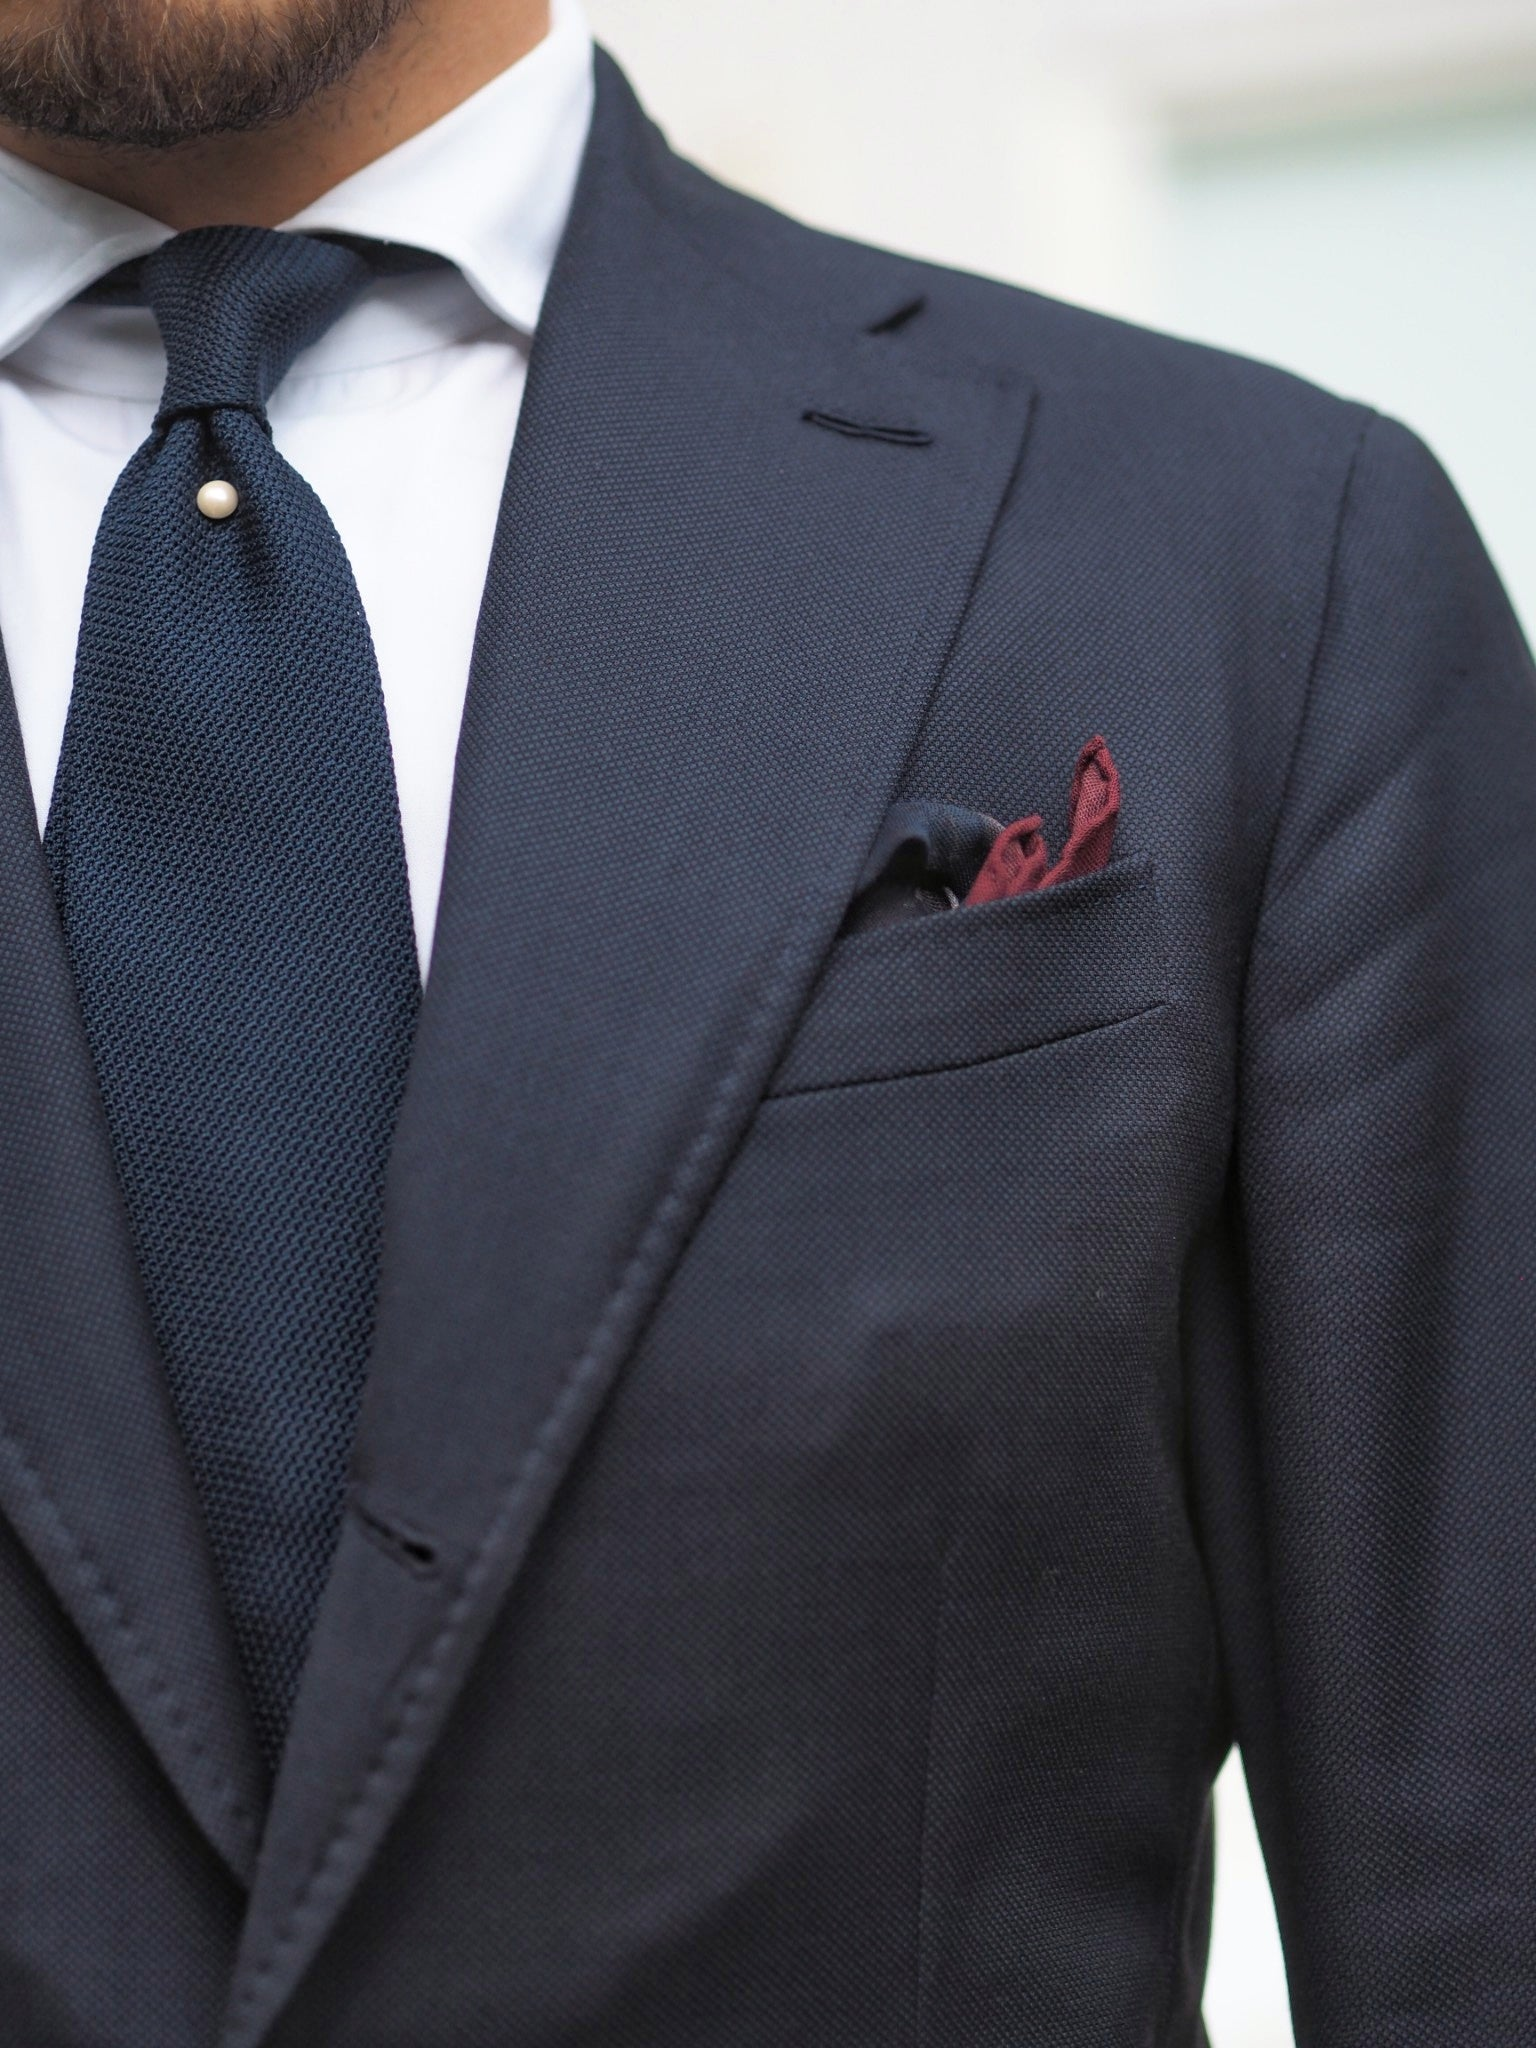 Blue suit for summer weddings party - tie pearl pin with navy blue grenadine tie.